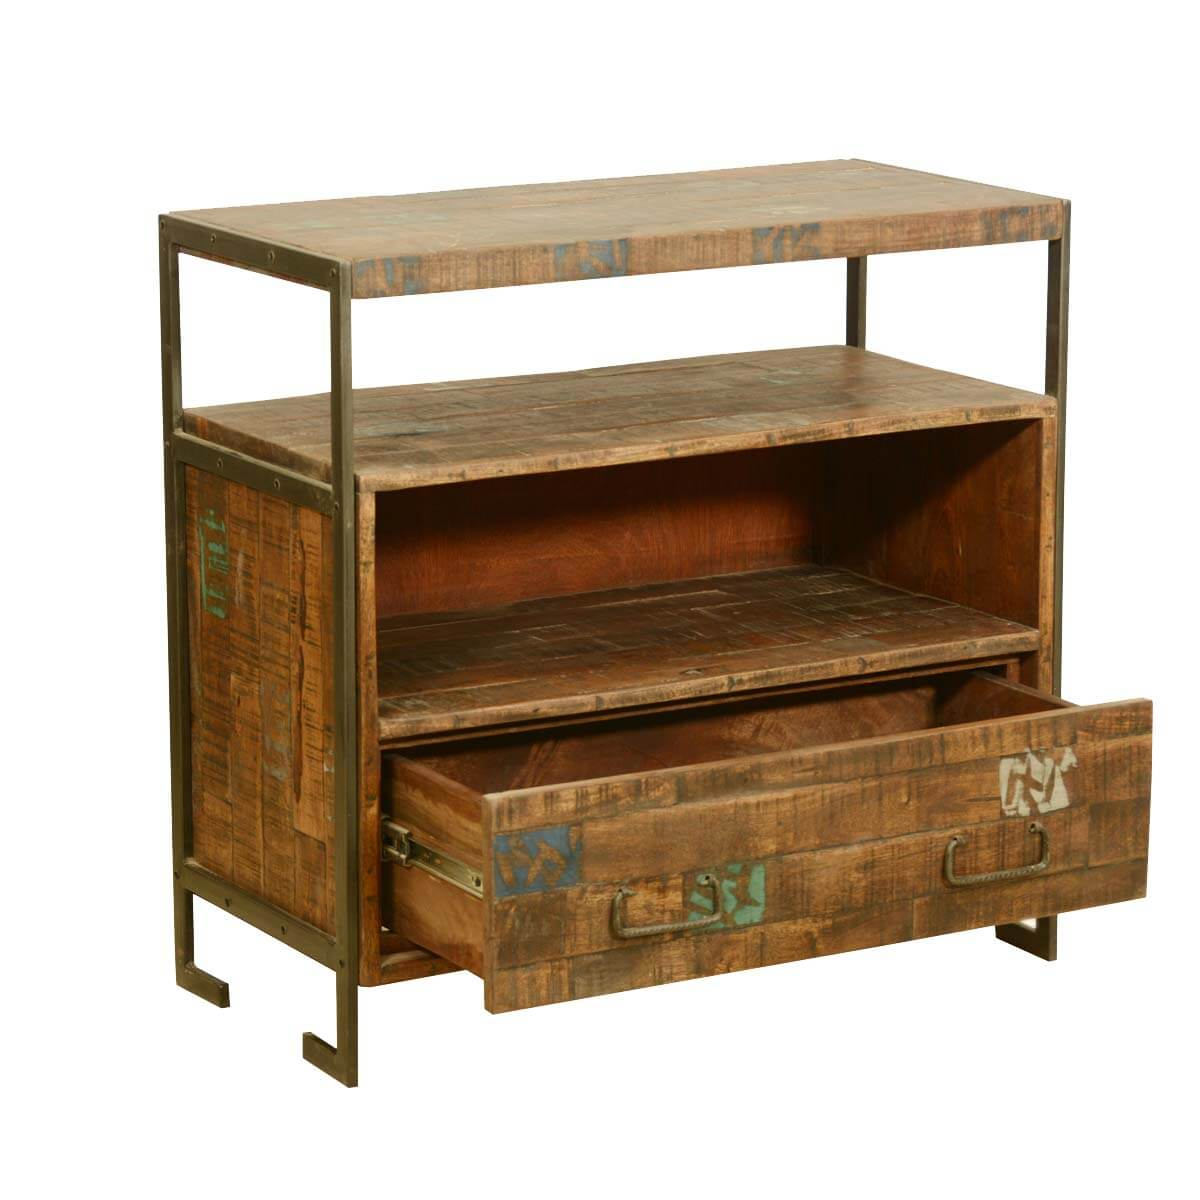 drakensberg reclaimed wood iron rustic media console tv stand. Black Bedroom Furniture Sets. Home Design Ideas